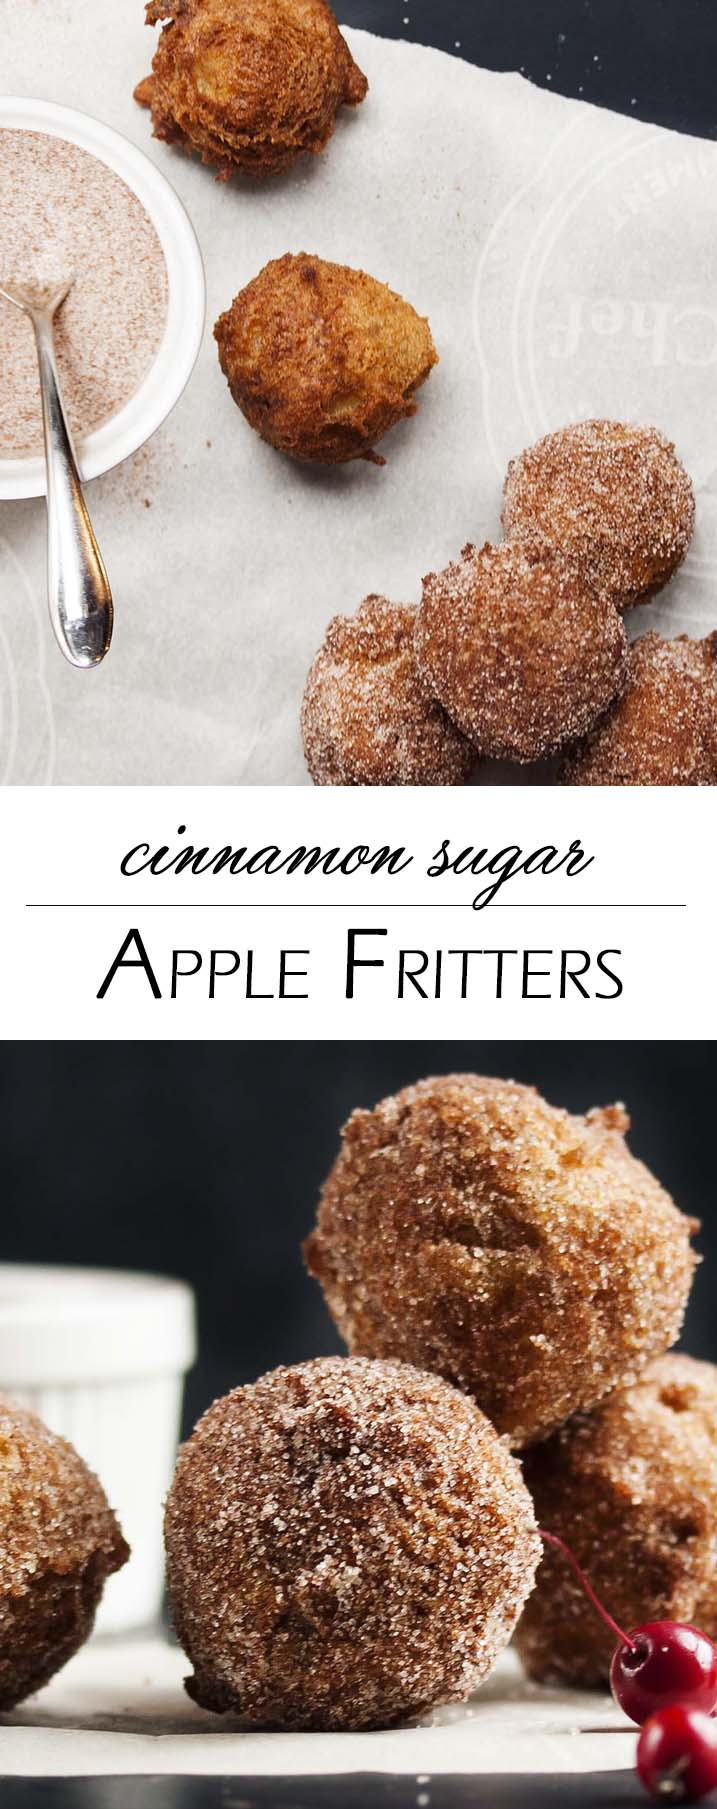 Cinnamon Sugar Apple Fritters - A snap to make, these apple fritters are little pillows of happiness full of chopped apples and covered in cinnamon sugar. And you just need one, little easy trick to turn out perfectly shaped fritters every time. | justalittlebitofbacon.com